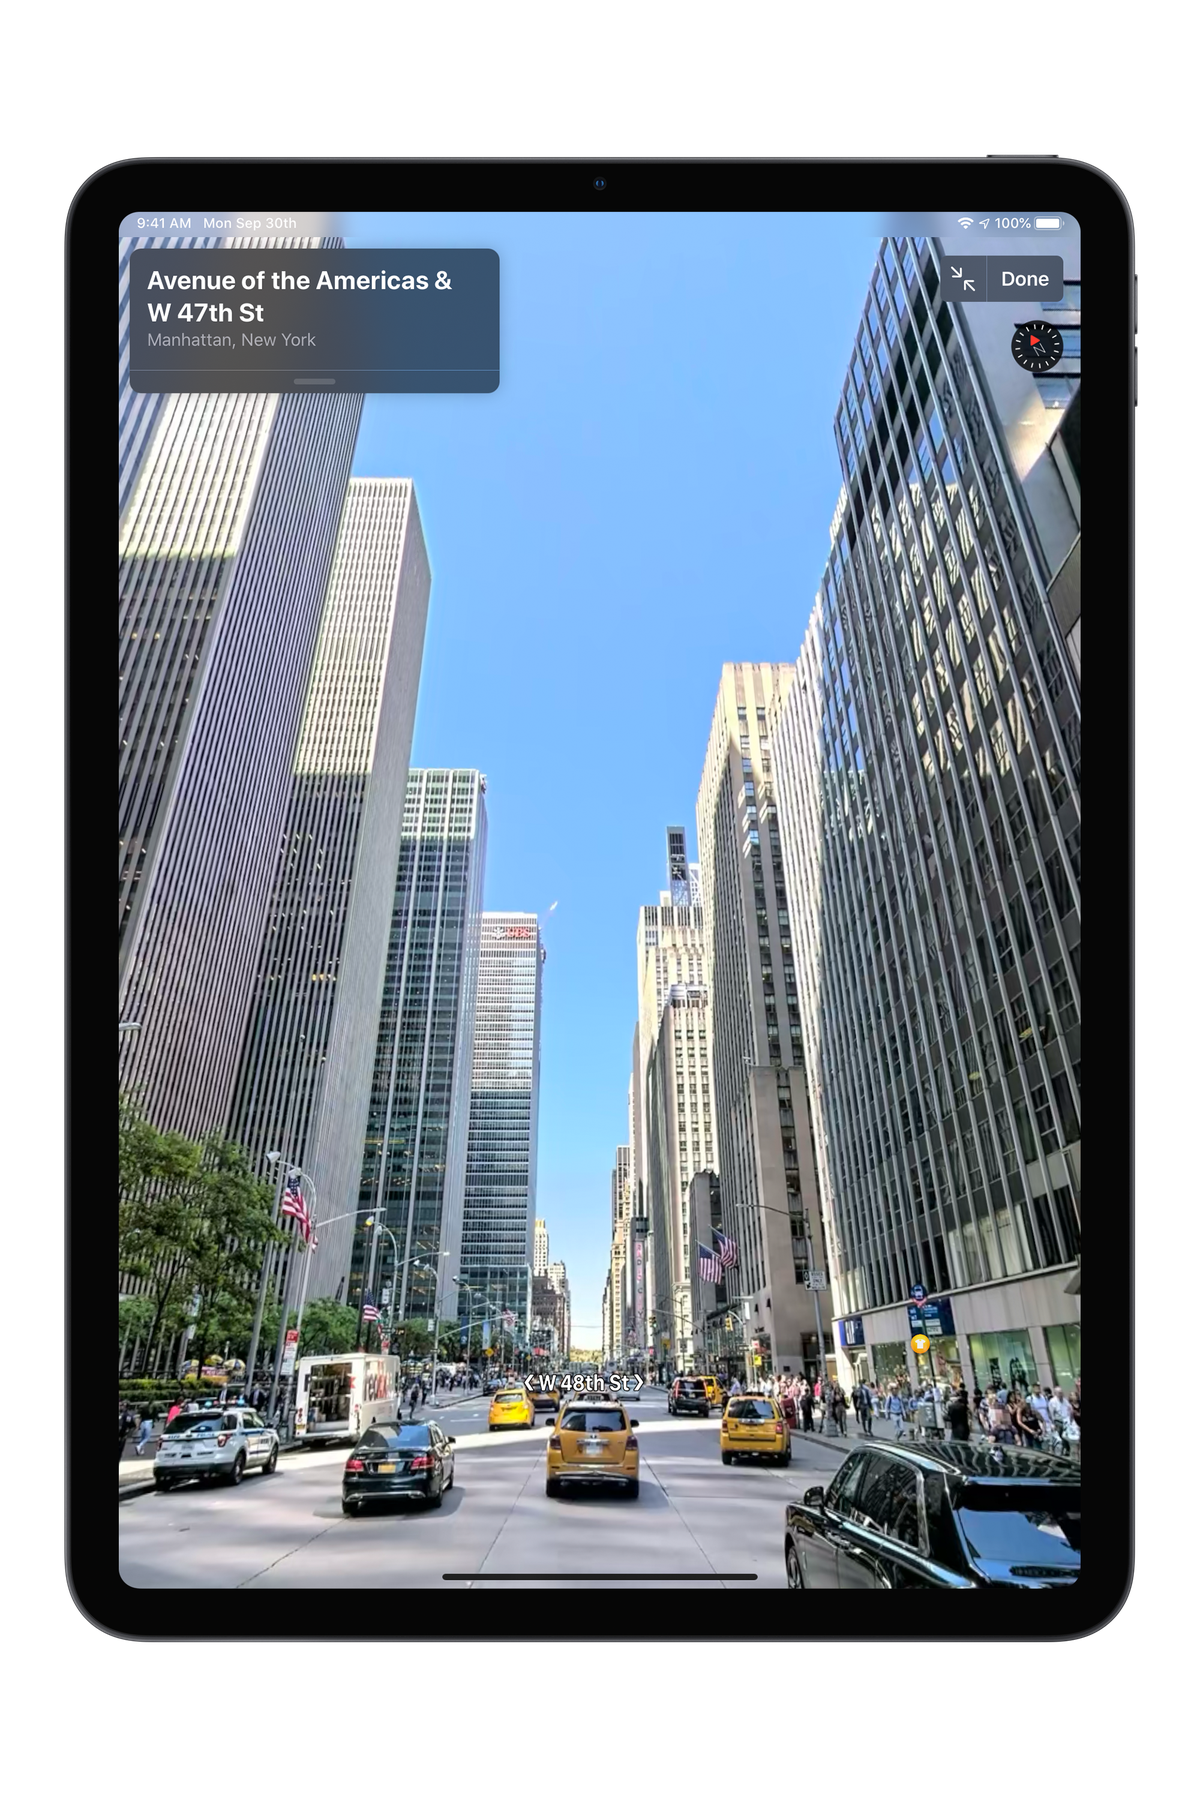 Apple Maps is looking better than ever, but it still has a ... on google maps street view software, google maps street view address, google maps street view mobile, google maps street view home, google maps street view online,